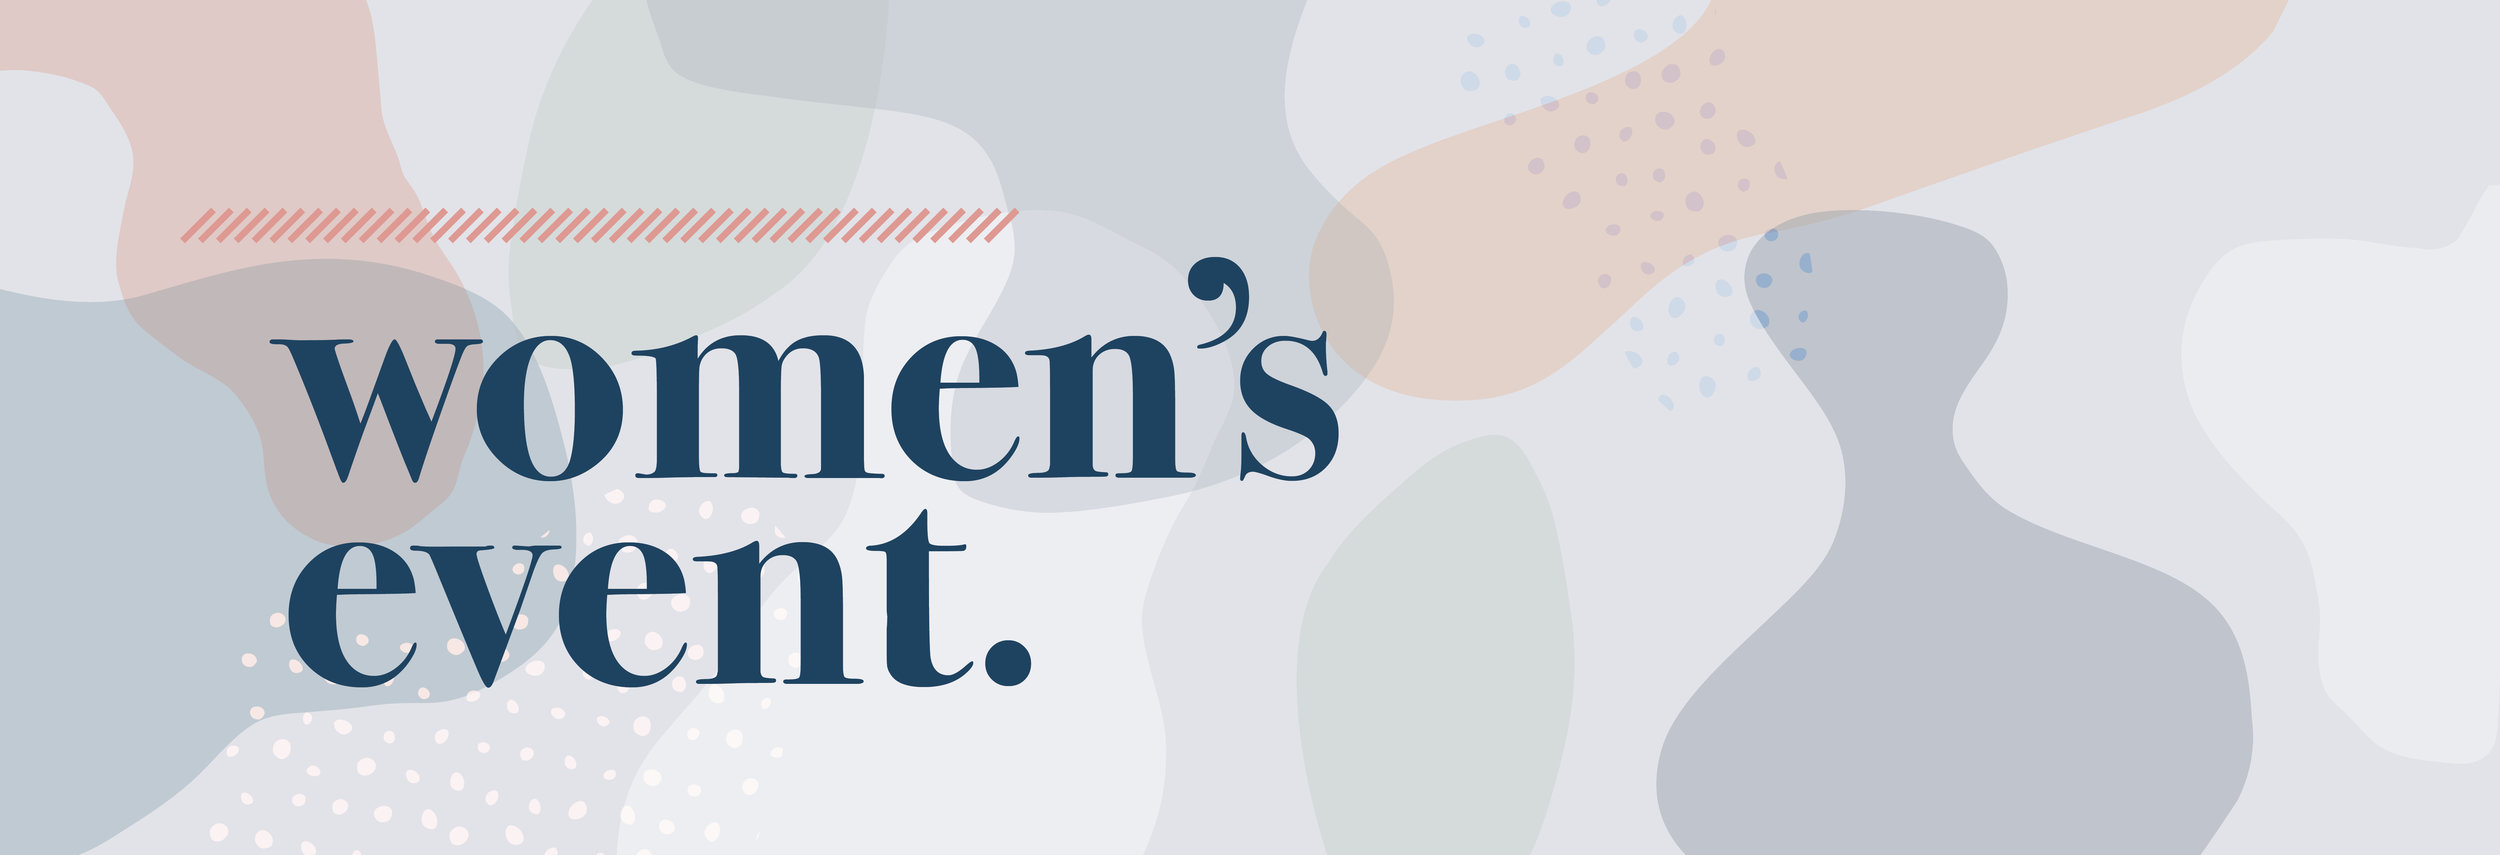 HT Web Event Headers_Women 27.04.19.jpg